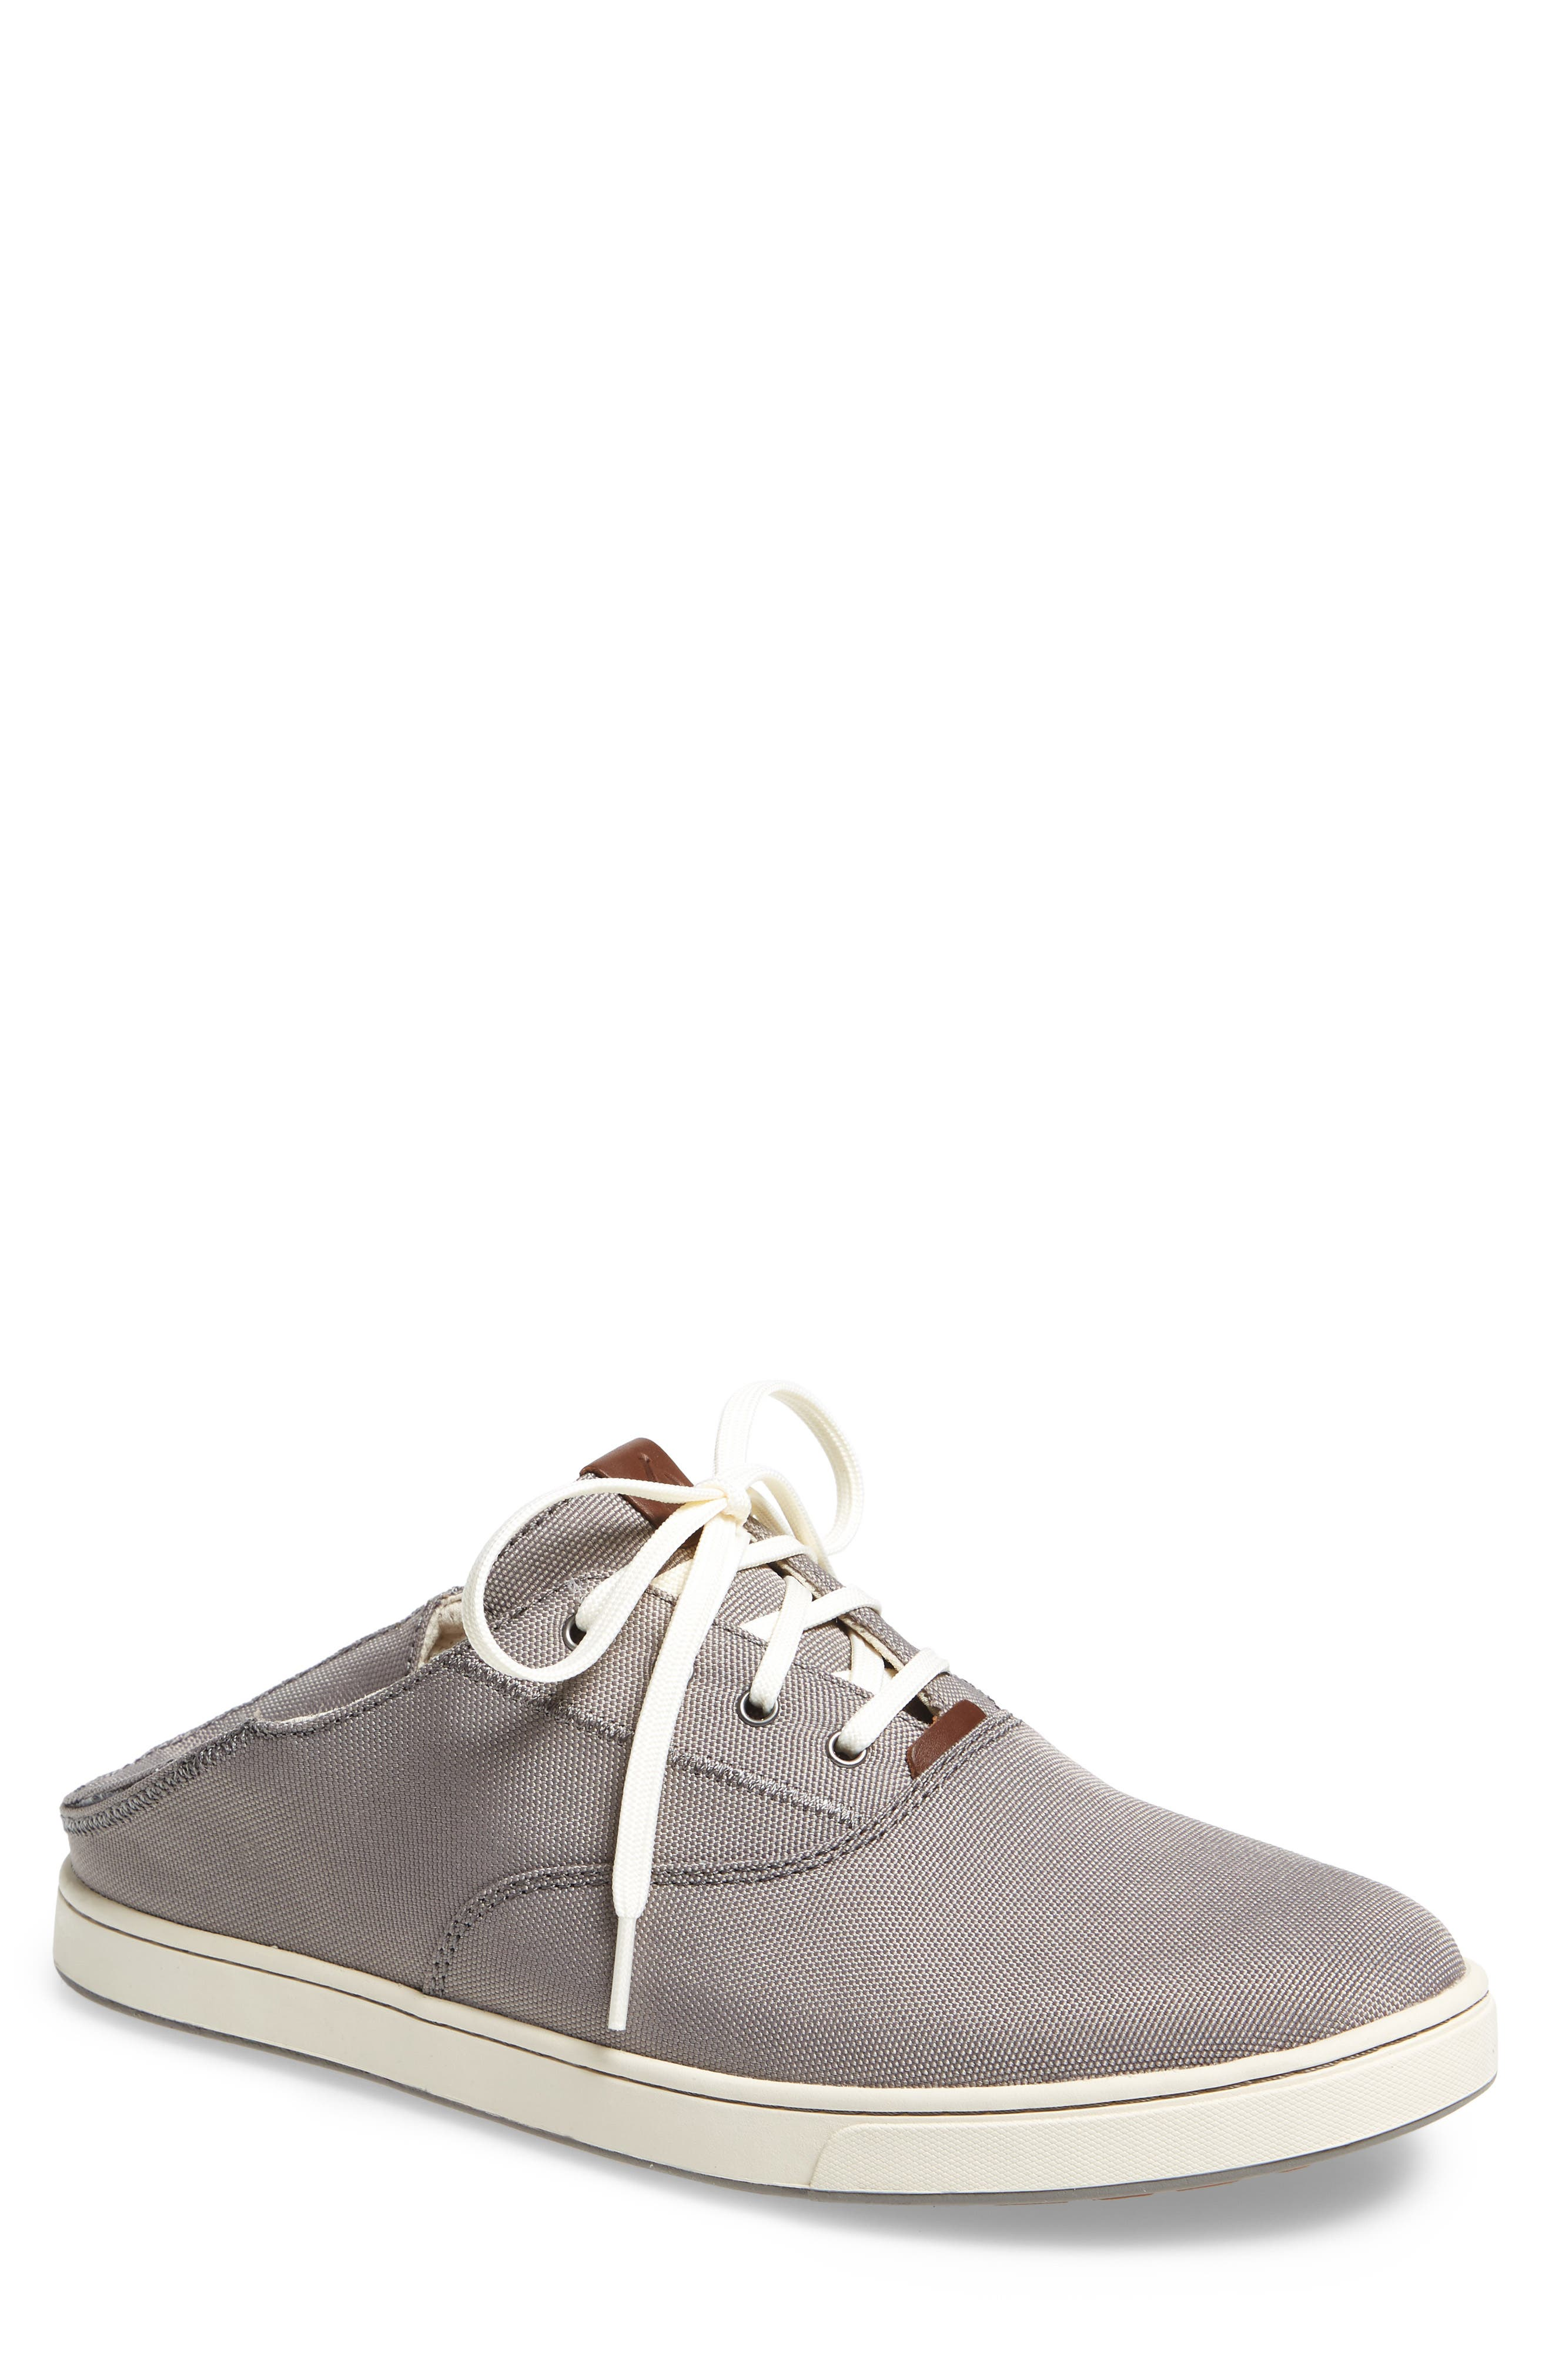 Kahu Collapsible Lace-Up Sneaker,                             Main thumbnail 1, color,                             055